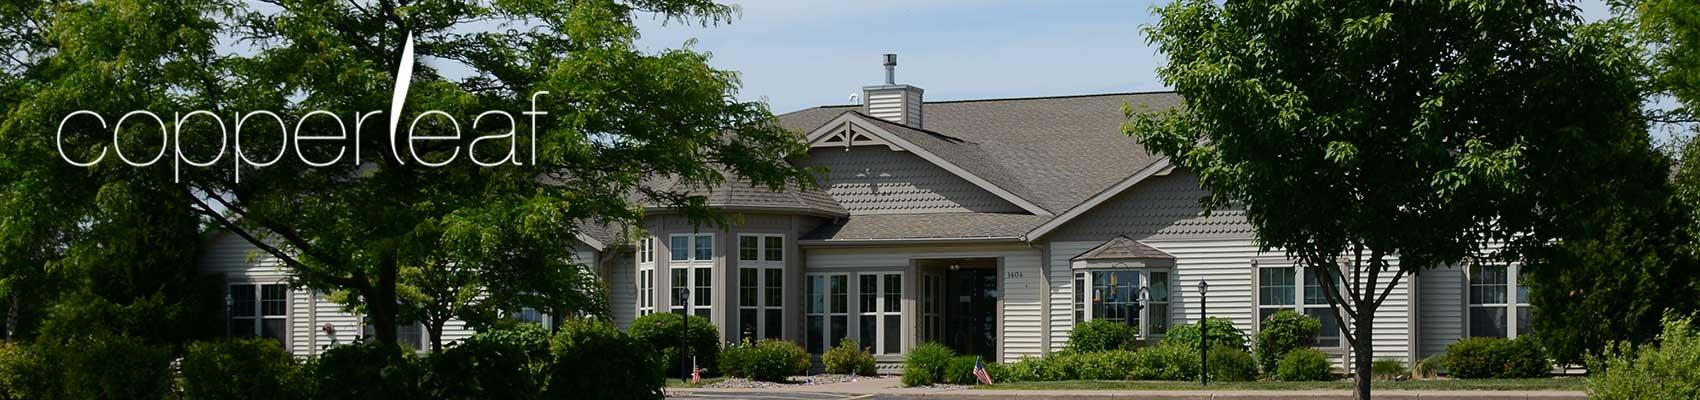 Assisted Living assisted living facilities Eldorado Wisconsin Fond du Lac County